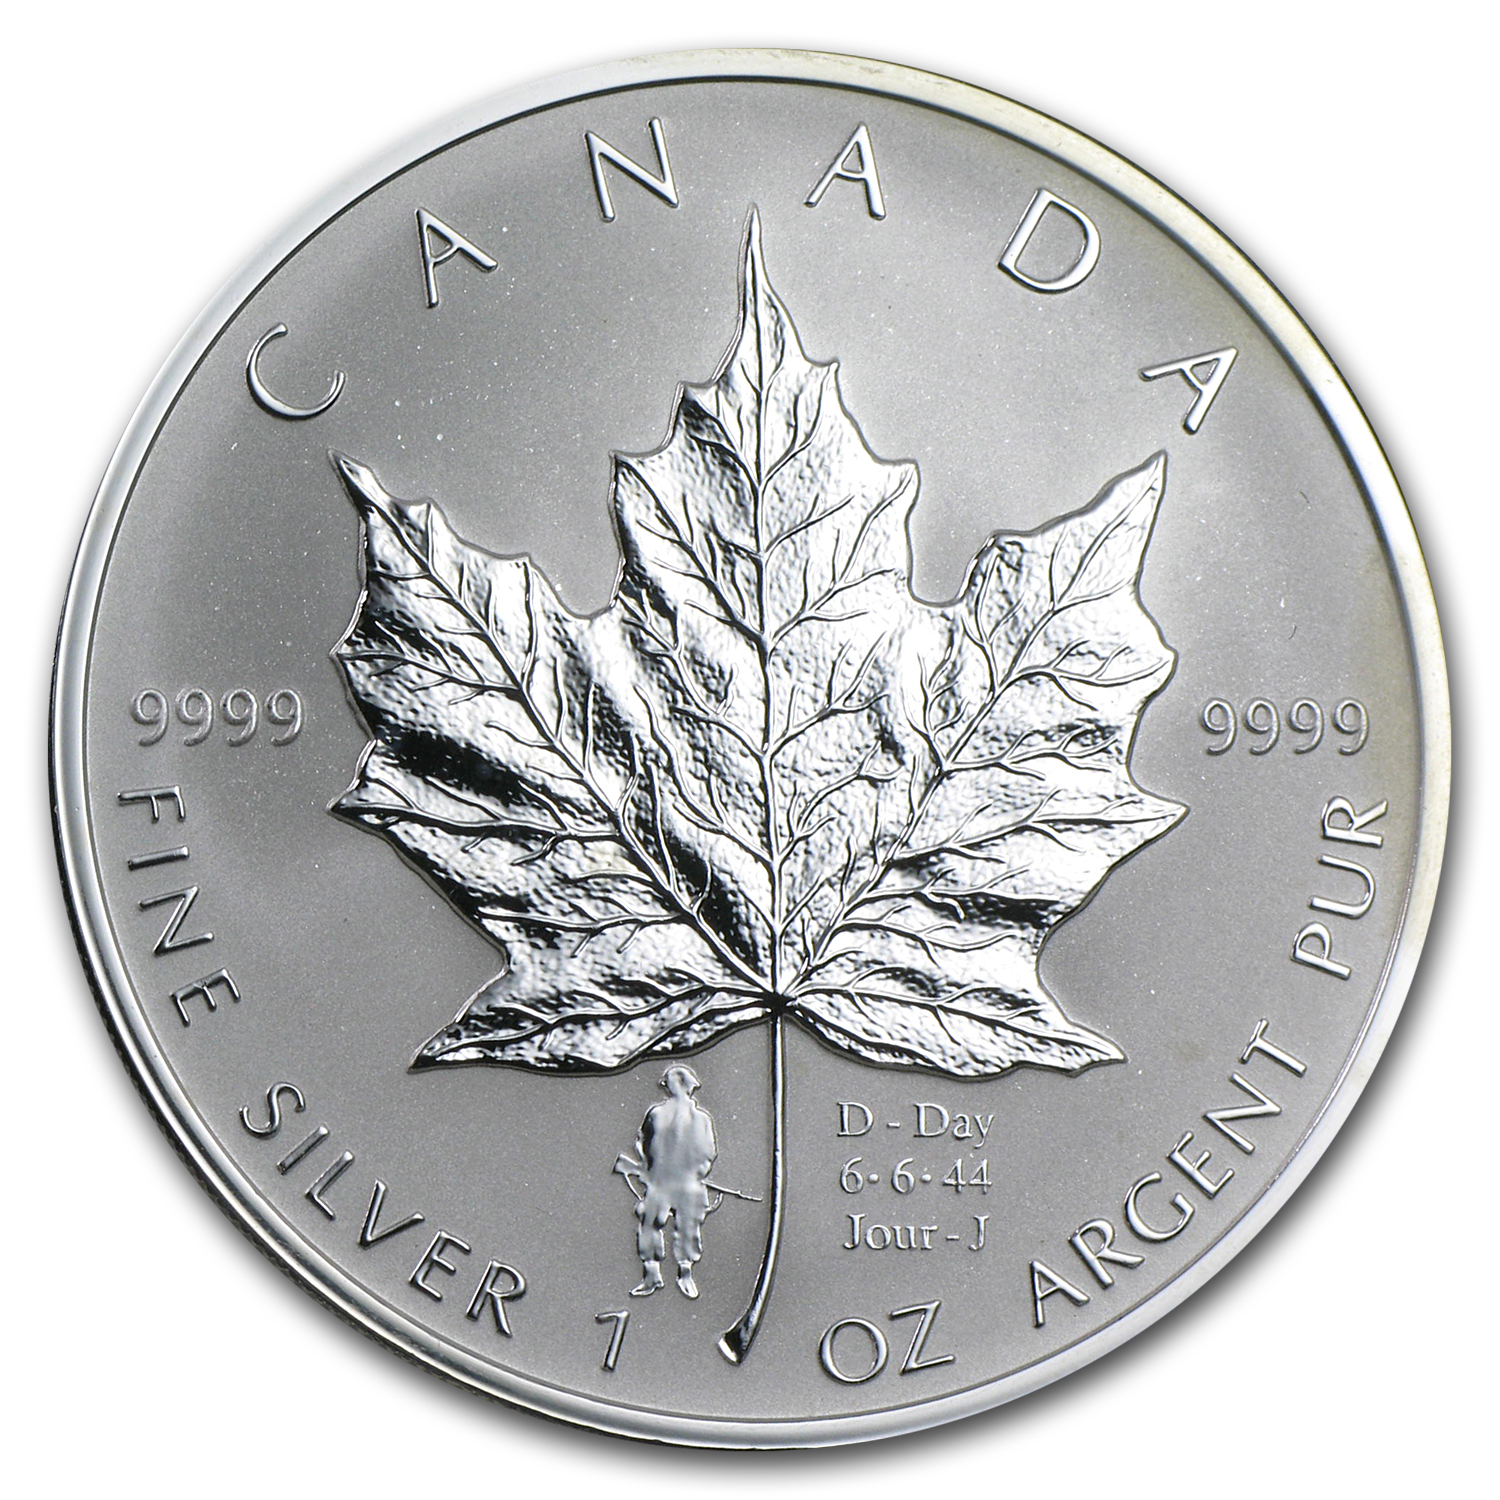 2004 Canada 1 oz Silver Maple Leaf D-Day Privy (w/Box & COA)